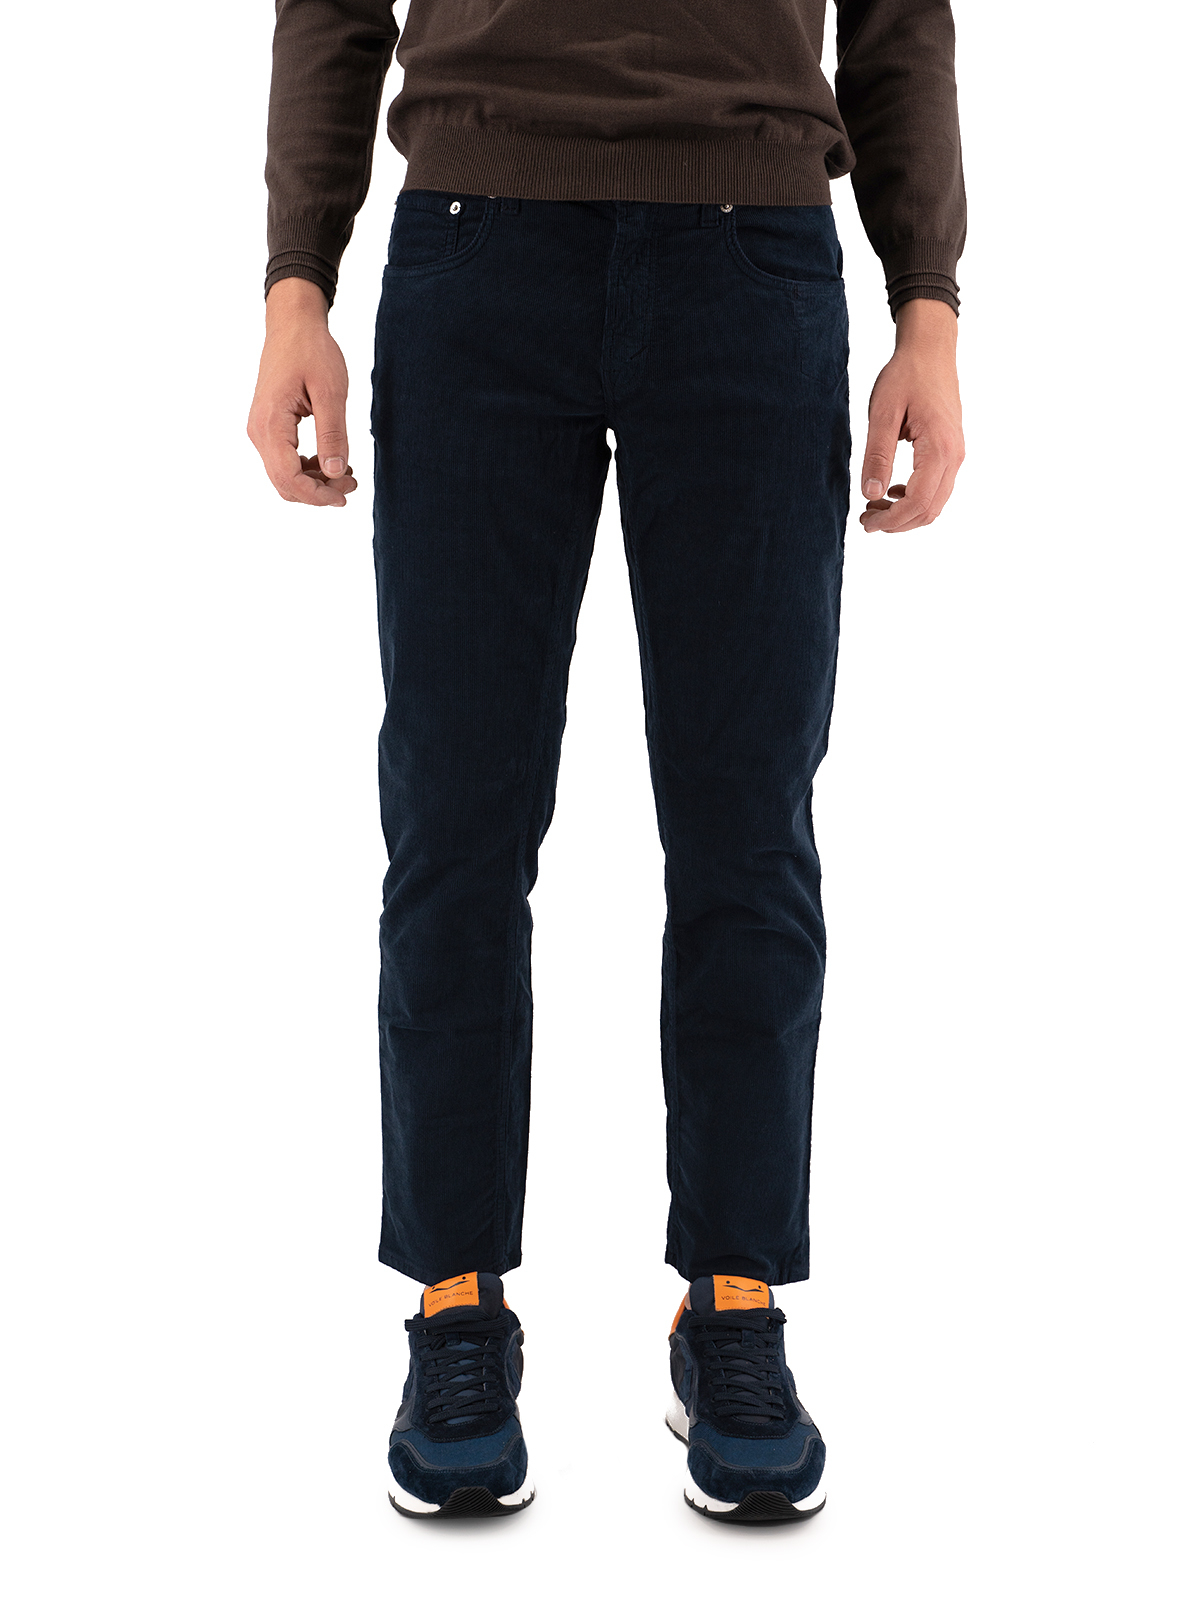 Department Five Pantalone U19D12 T1923 CORCHEY